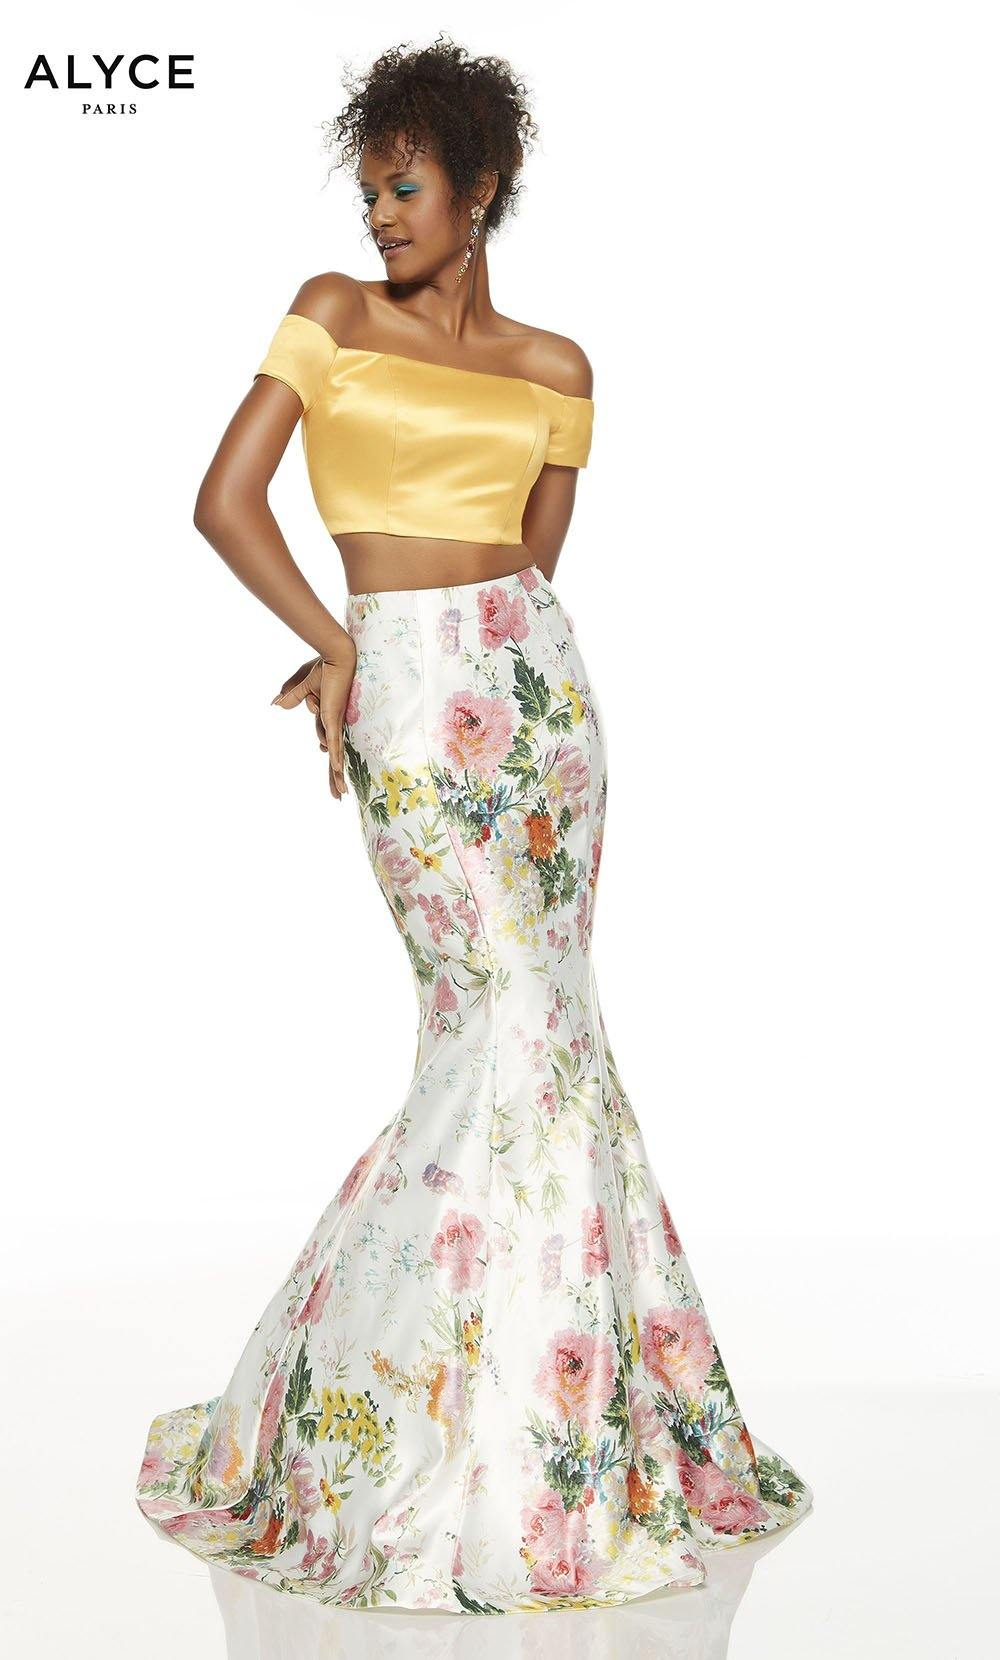 Wildflower-Marigold off the shoulder two piece formal dress with a crop top and floral skirt